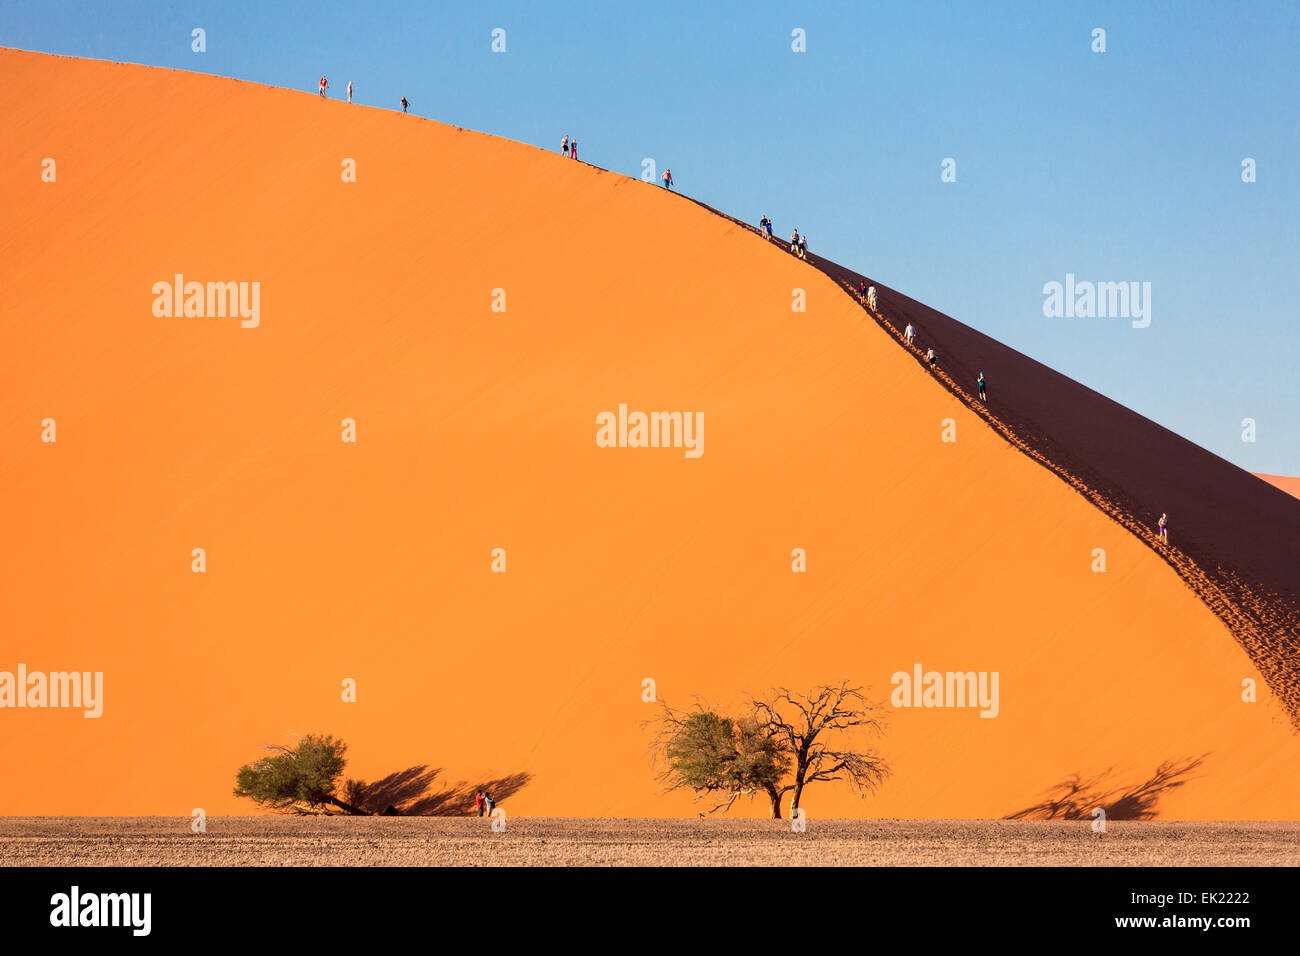 Early morning climbers on Dune 45 near Sossusvlei, Namib-Naukluft National Park, Namibia - Stock Image